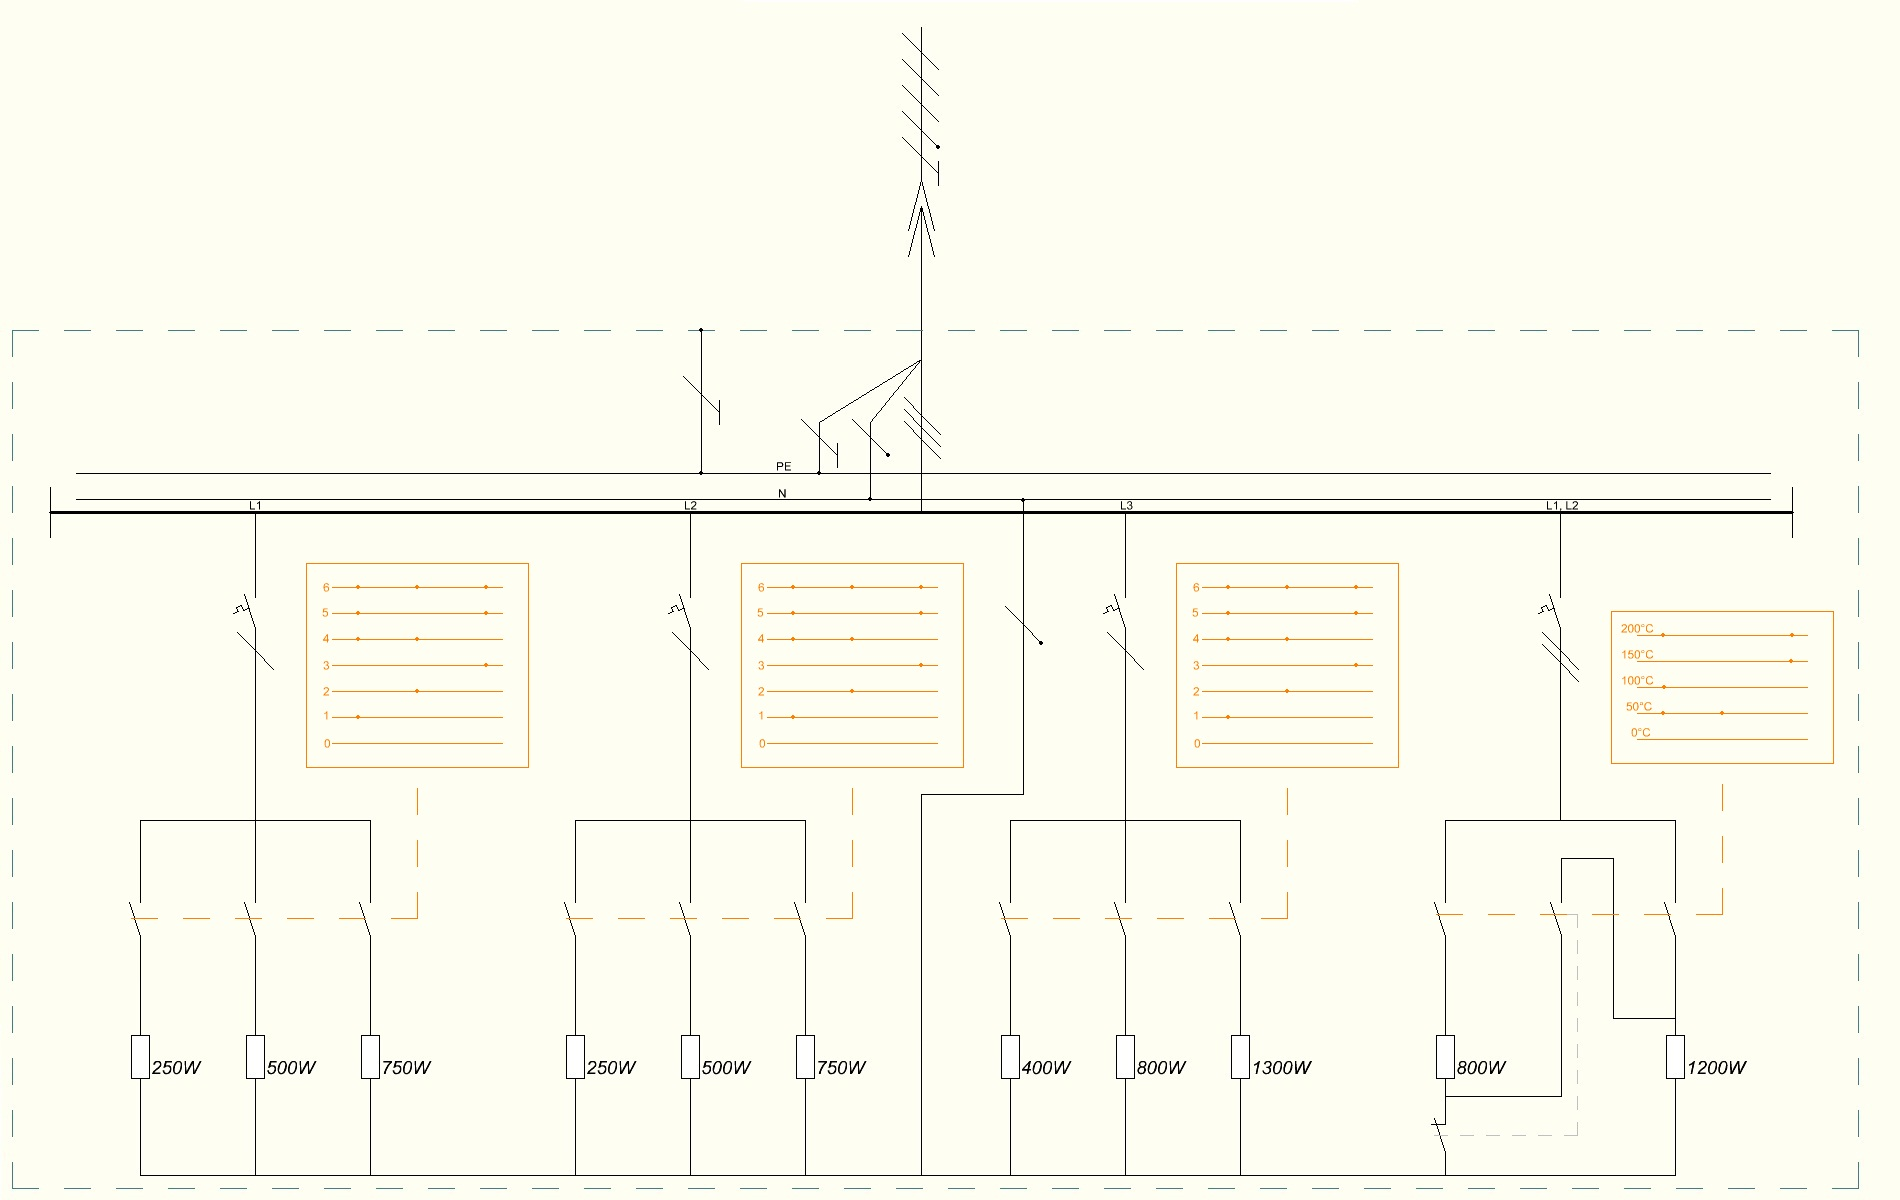 hight resolution of file schematic wiring diagram of electrical stove jpg wikimedia electric stove wiring diagram electrical stove wiring diagram